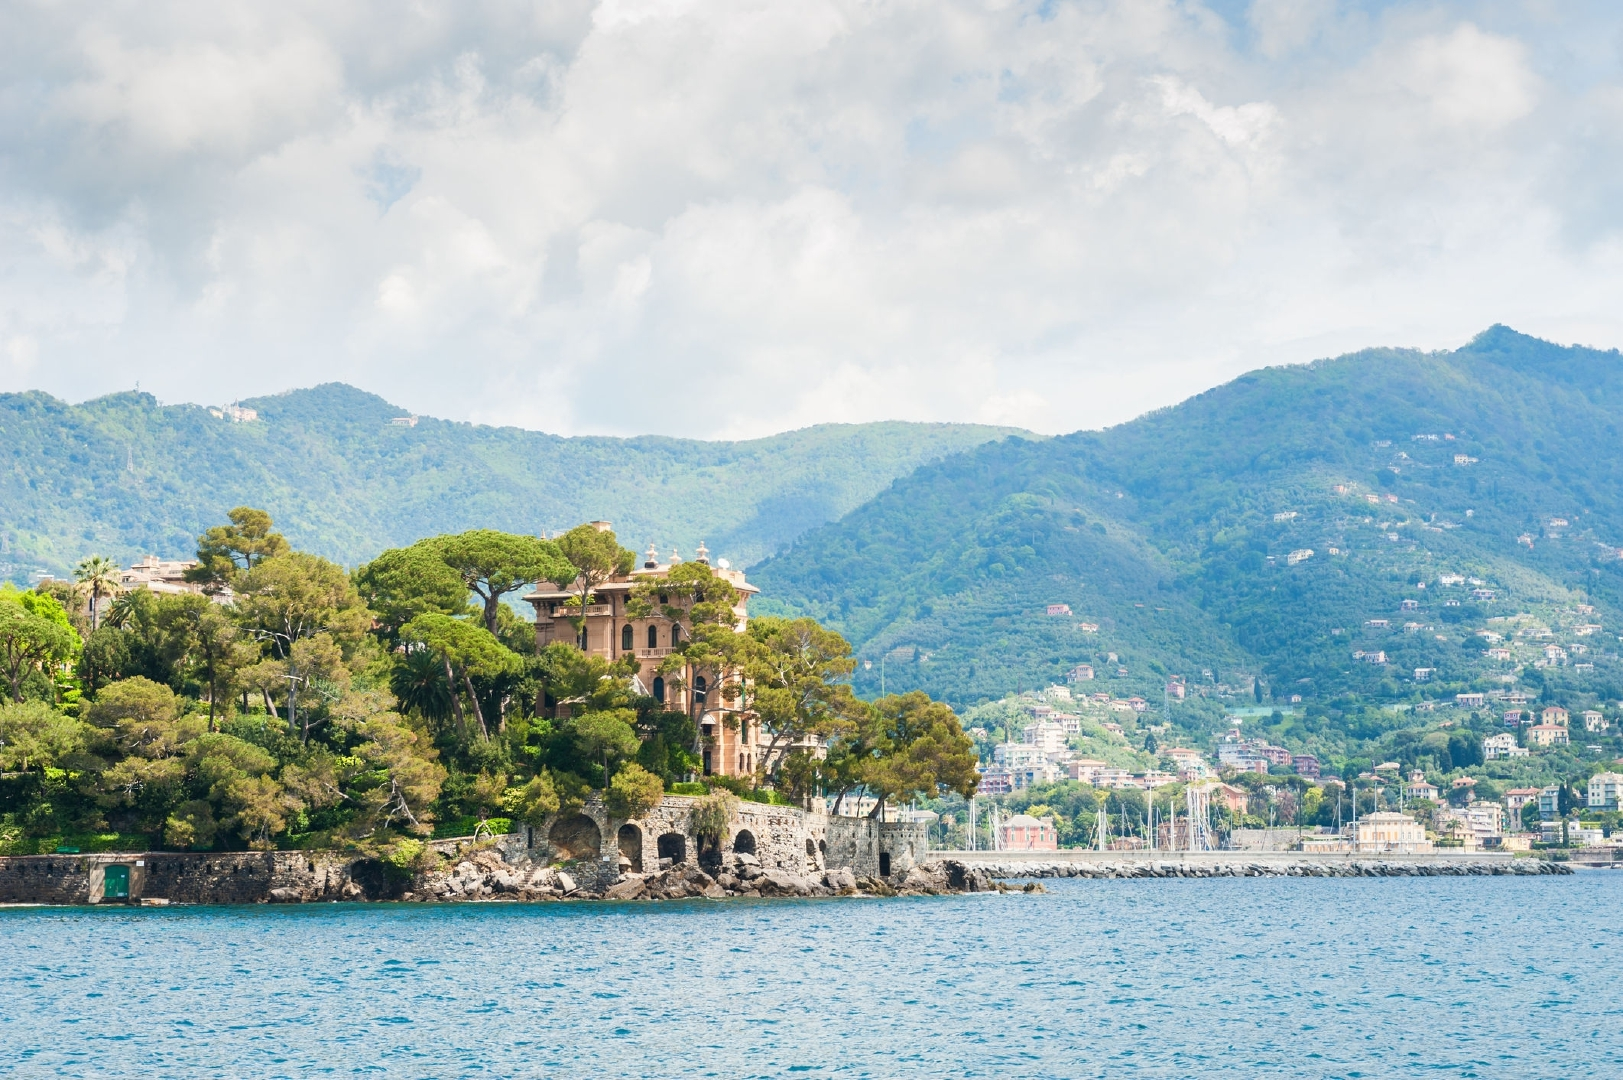 The beautiful view of the sea coast and mountains in Rapallo, Ligurian coast, Italy.